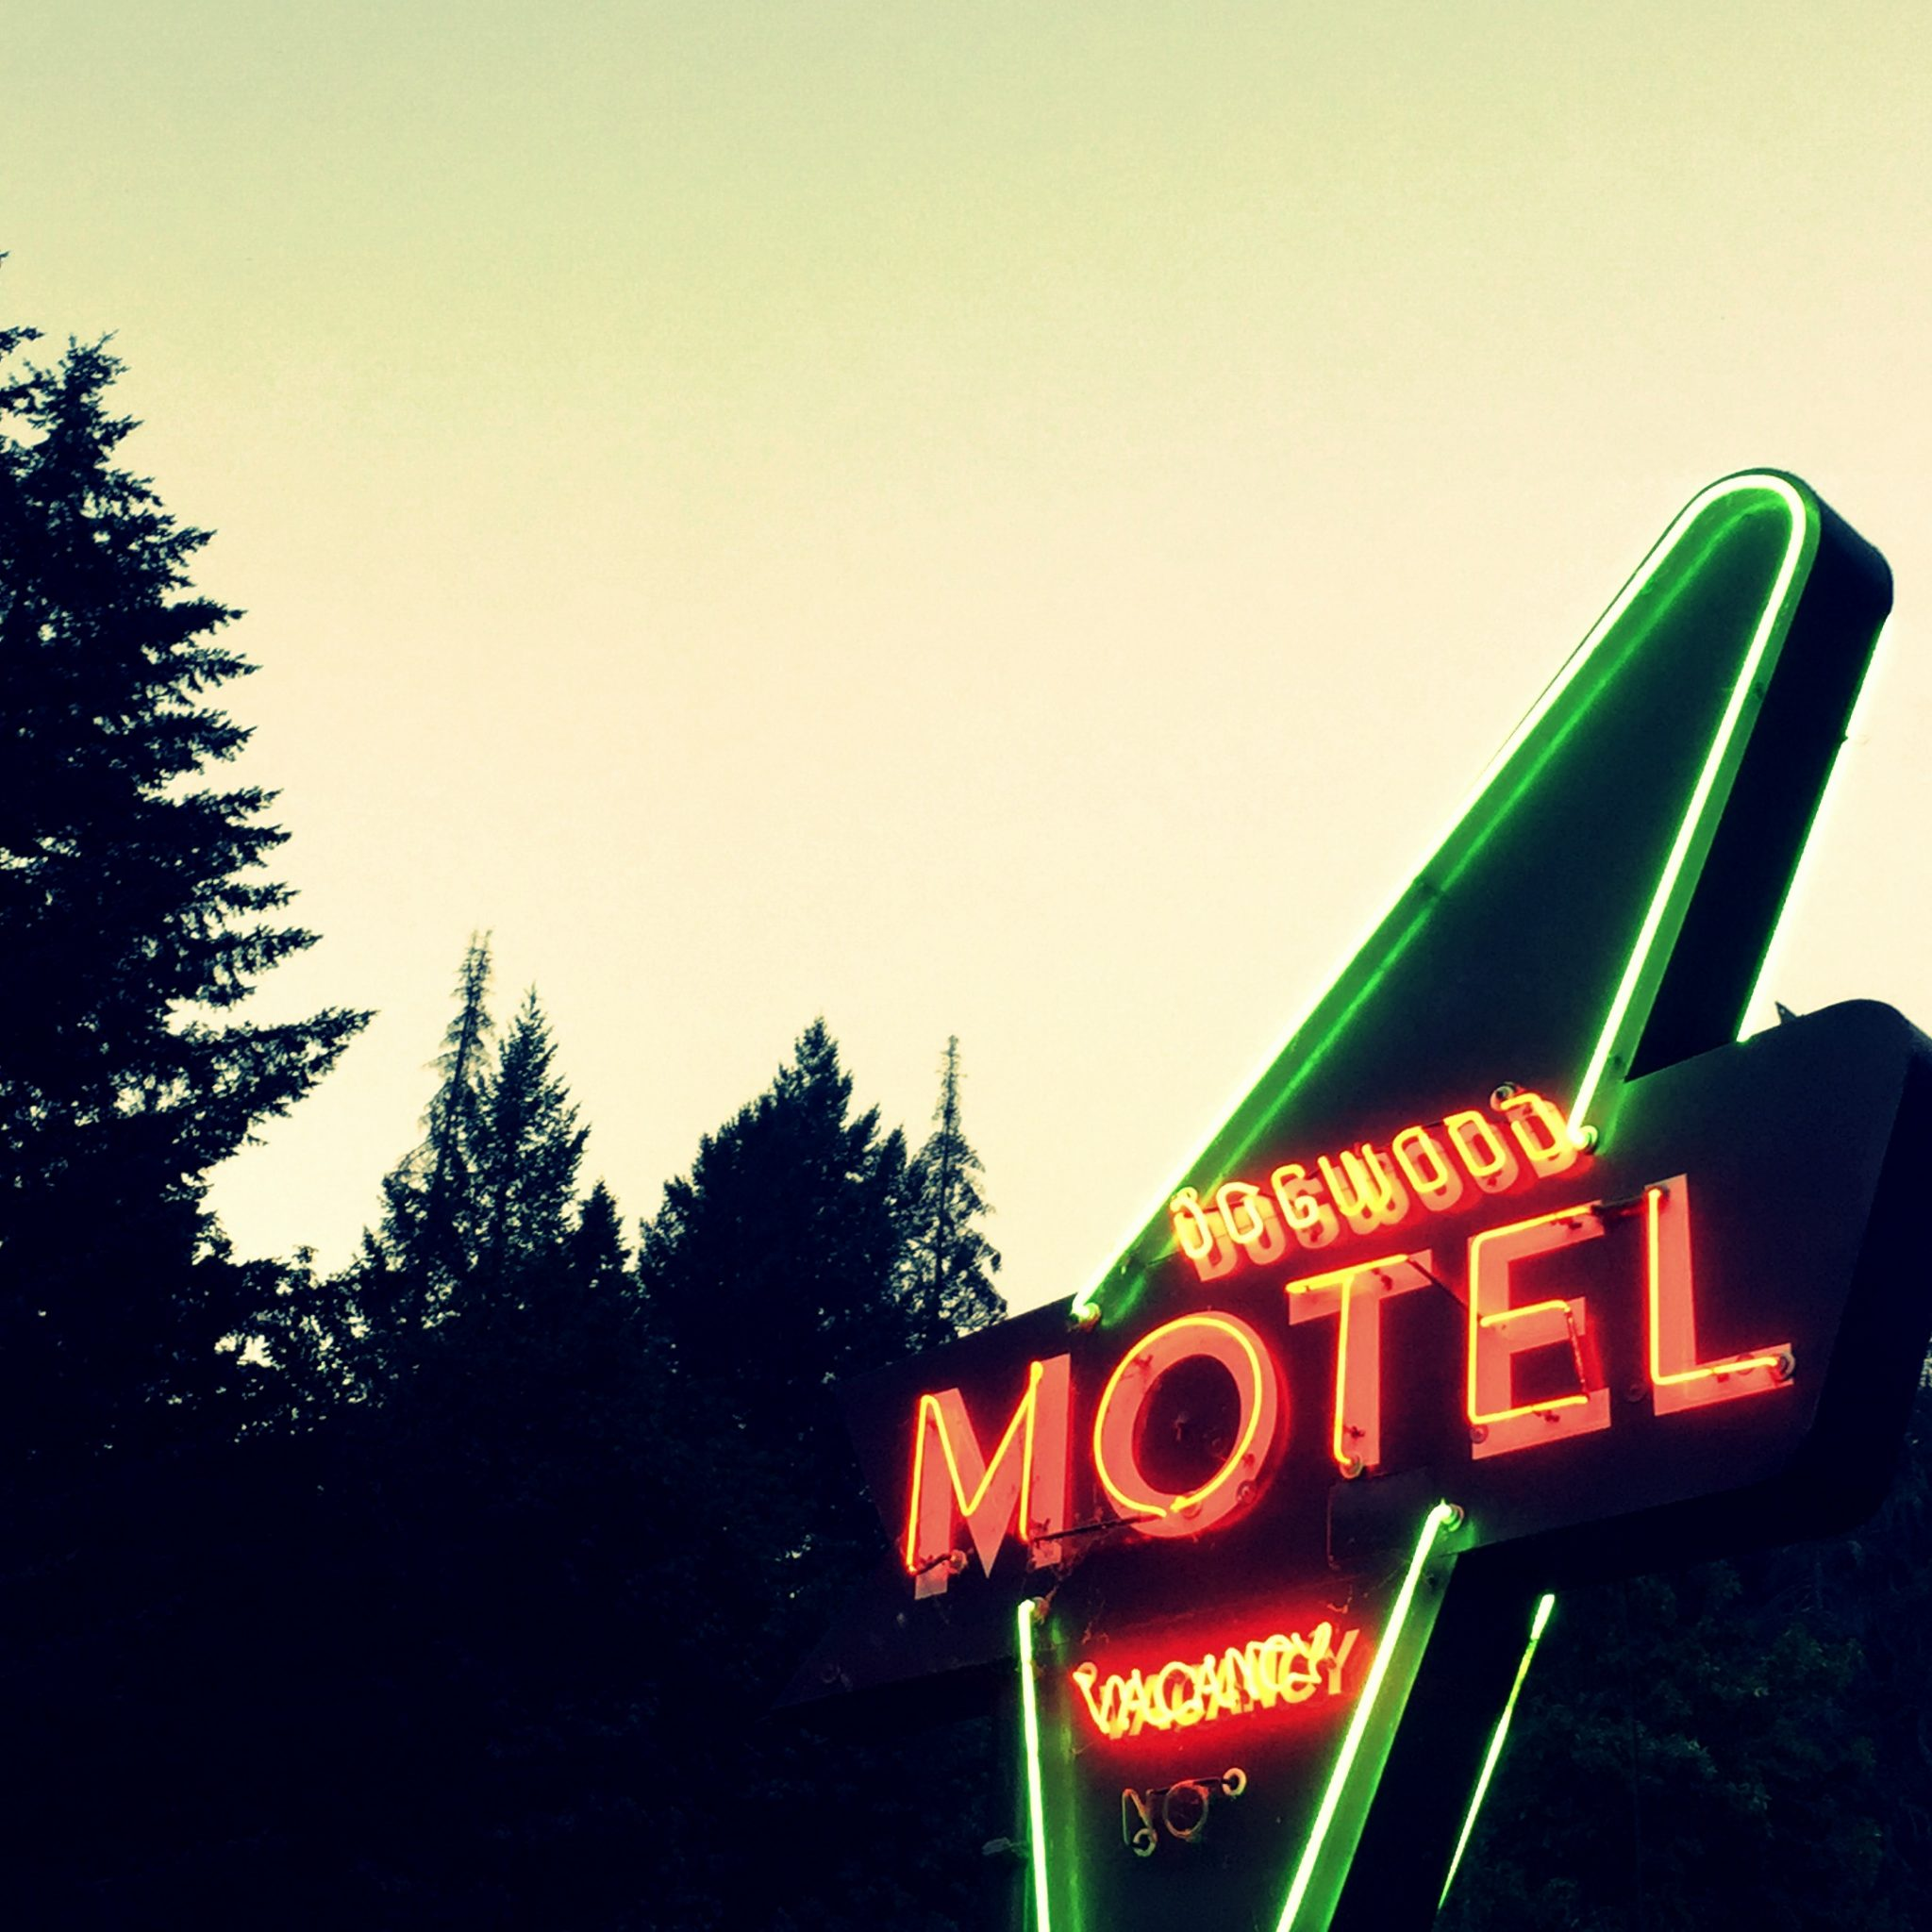 Cozy wood cabins with a touch of retro at the Dogwood Motel.